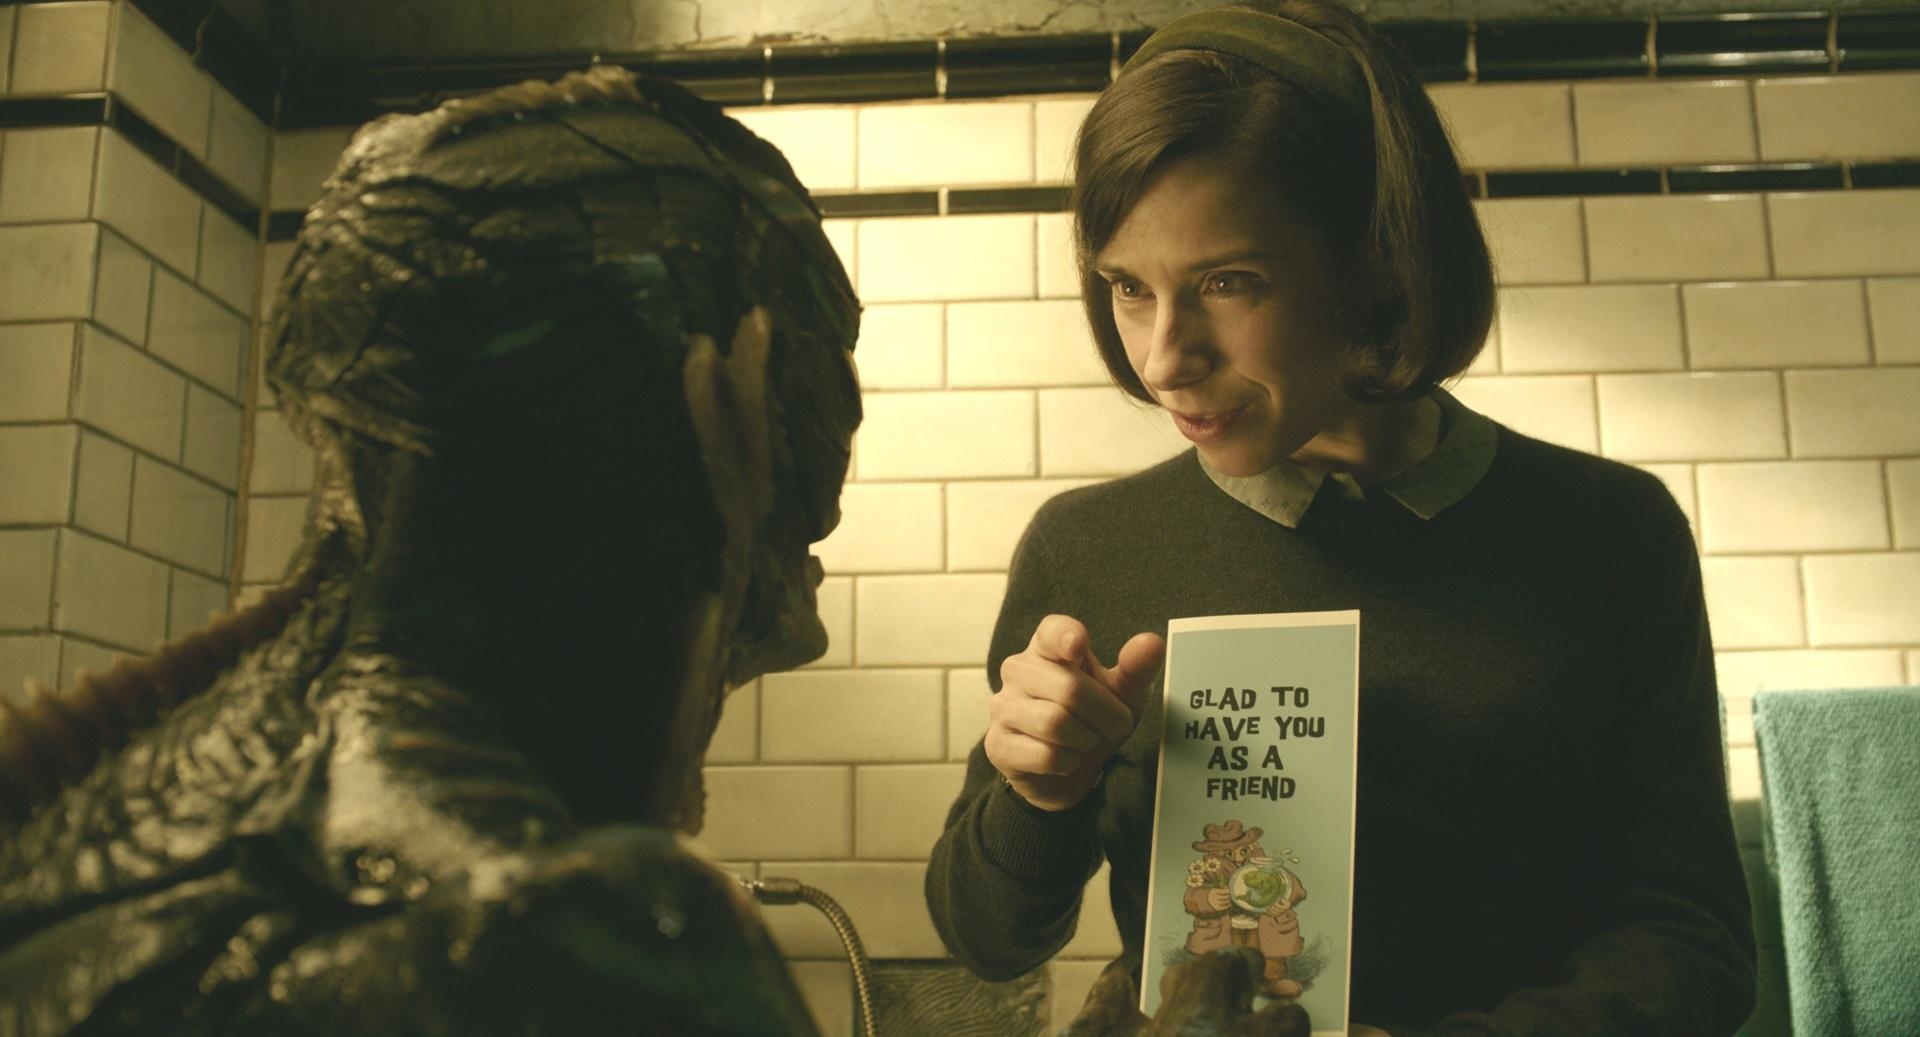 The Shape of Water tells an unconventional love story